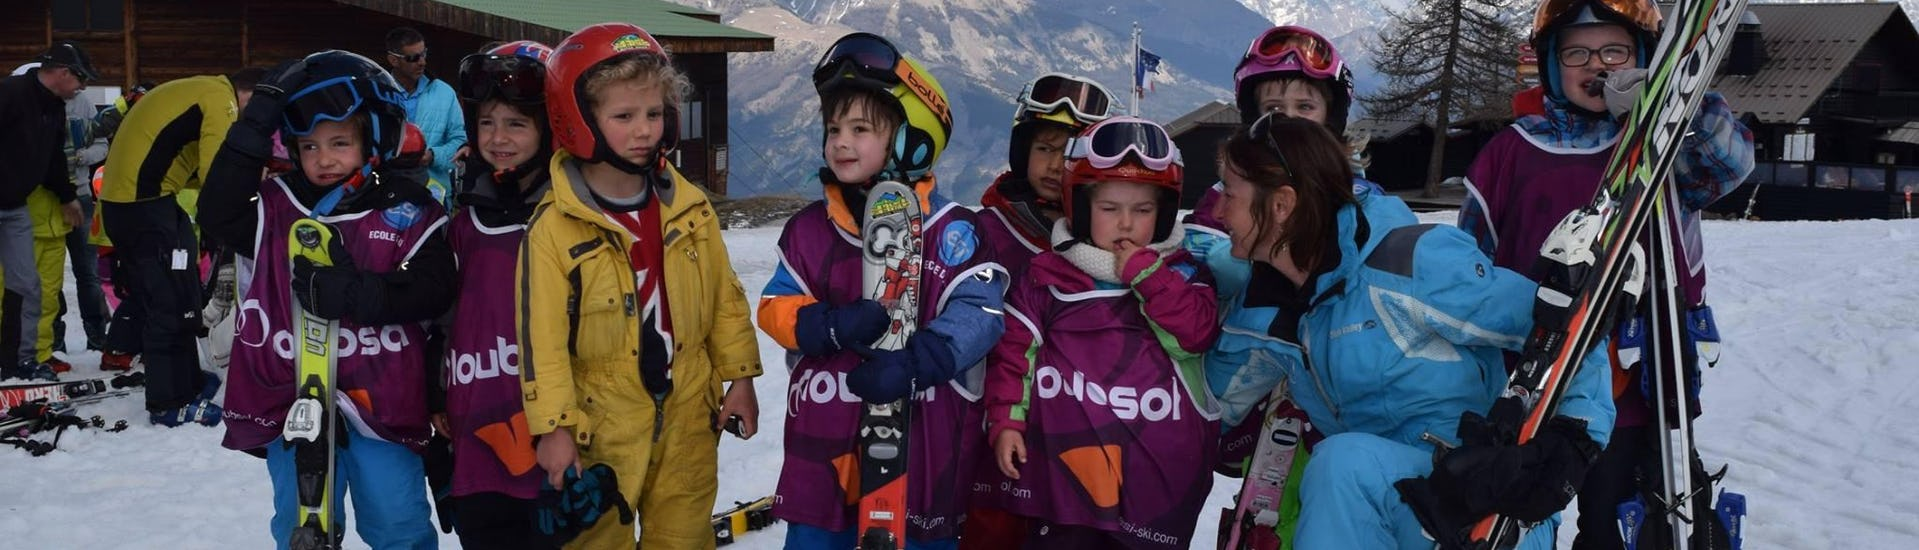 Ski Lessons for Kids (5-12 y.) - Afternoon - 23-28 February